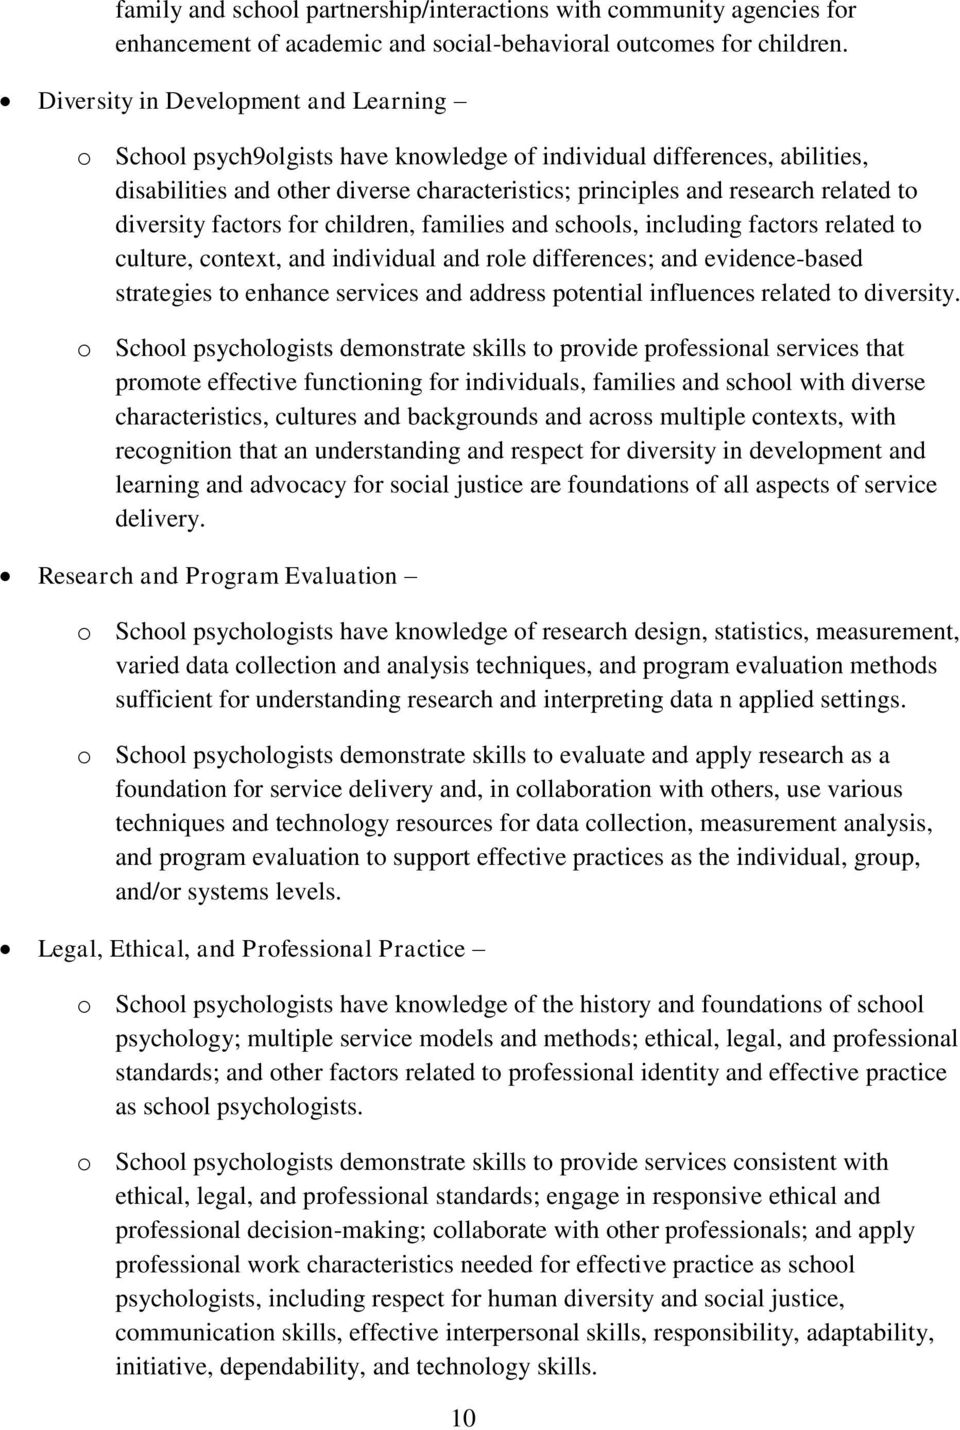 diversity factors for children, families and schools, including factors related to culture, context, and individual and role differences; and evidence-based strategies to enhance services and address